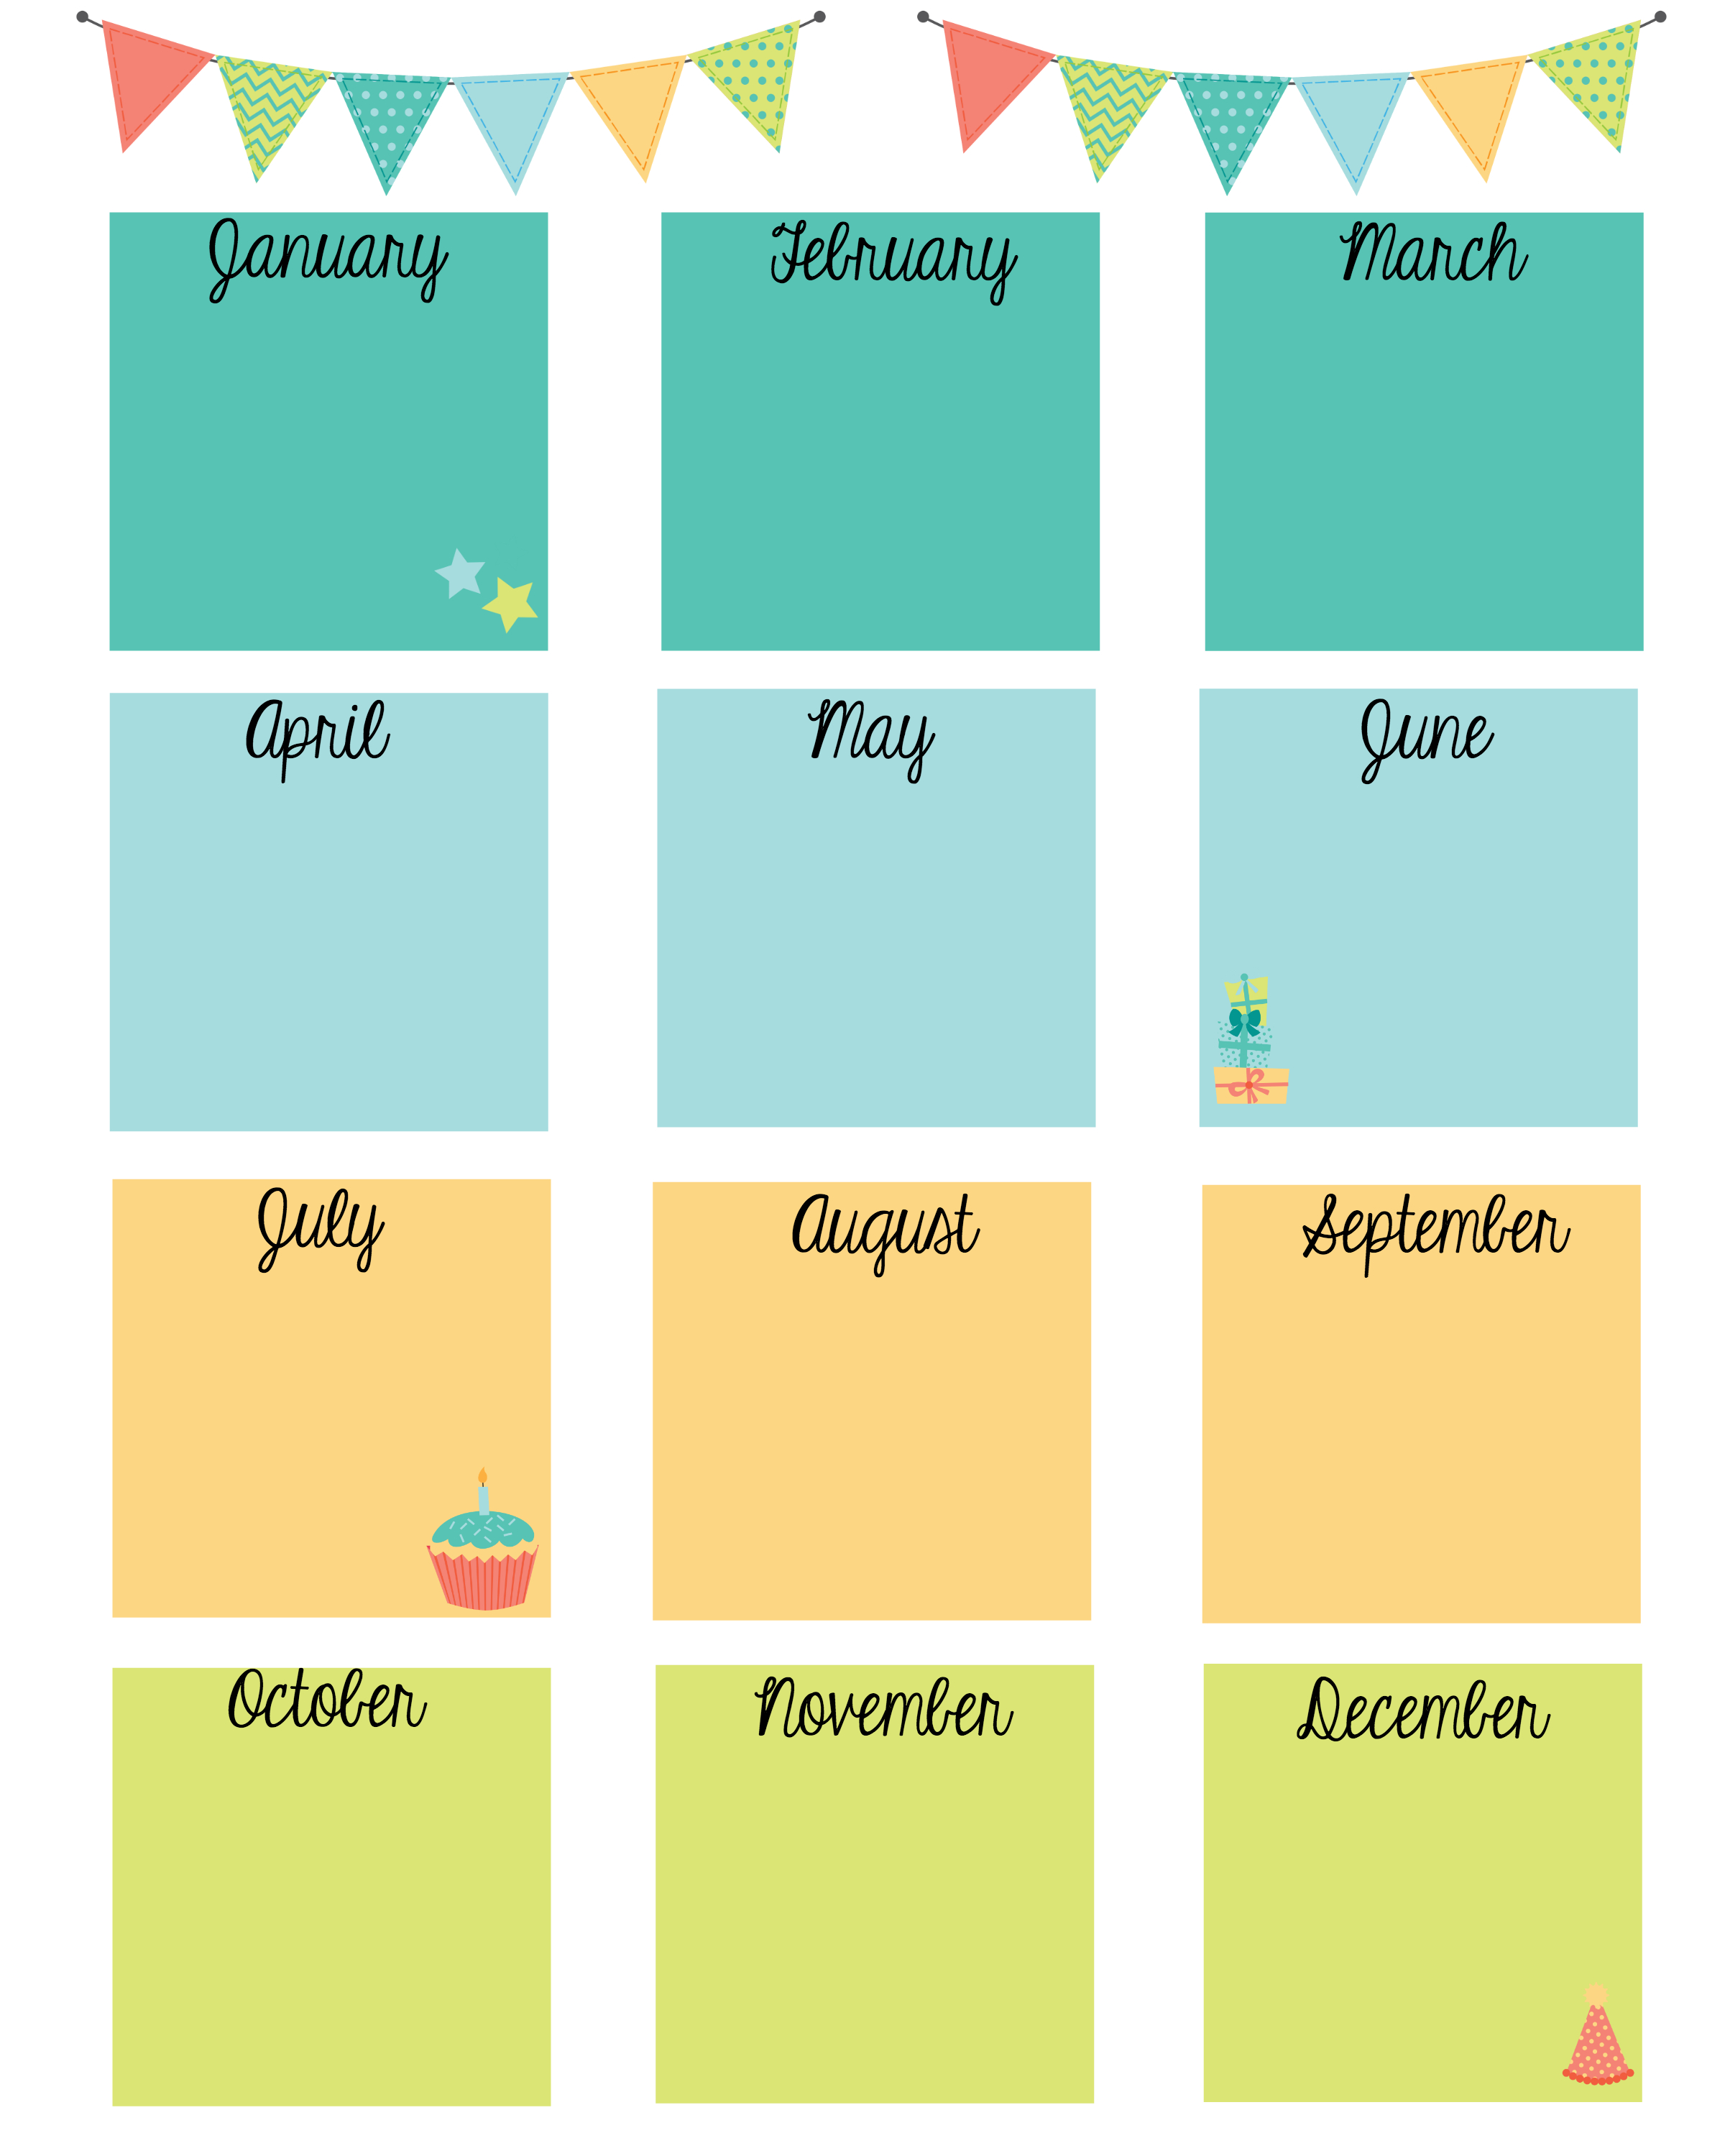 Keep In Touch With Friends With A Birthday Calendar - Free Printable Birthday Graph